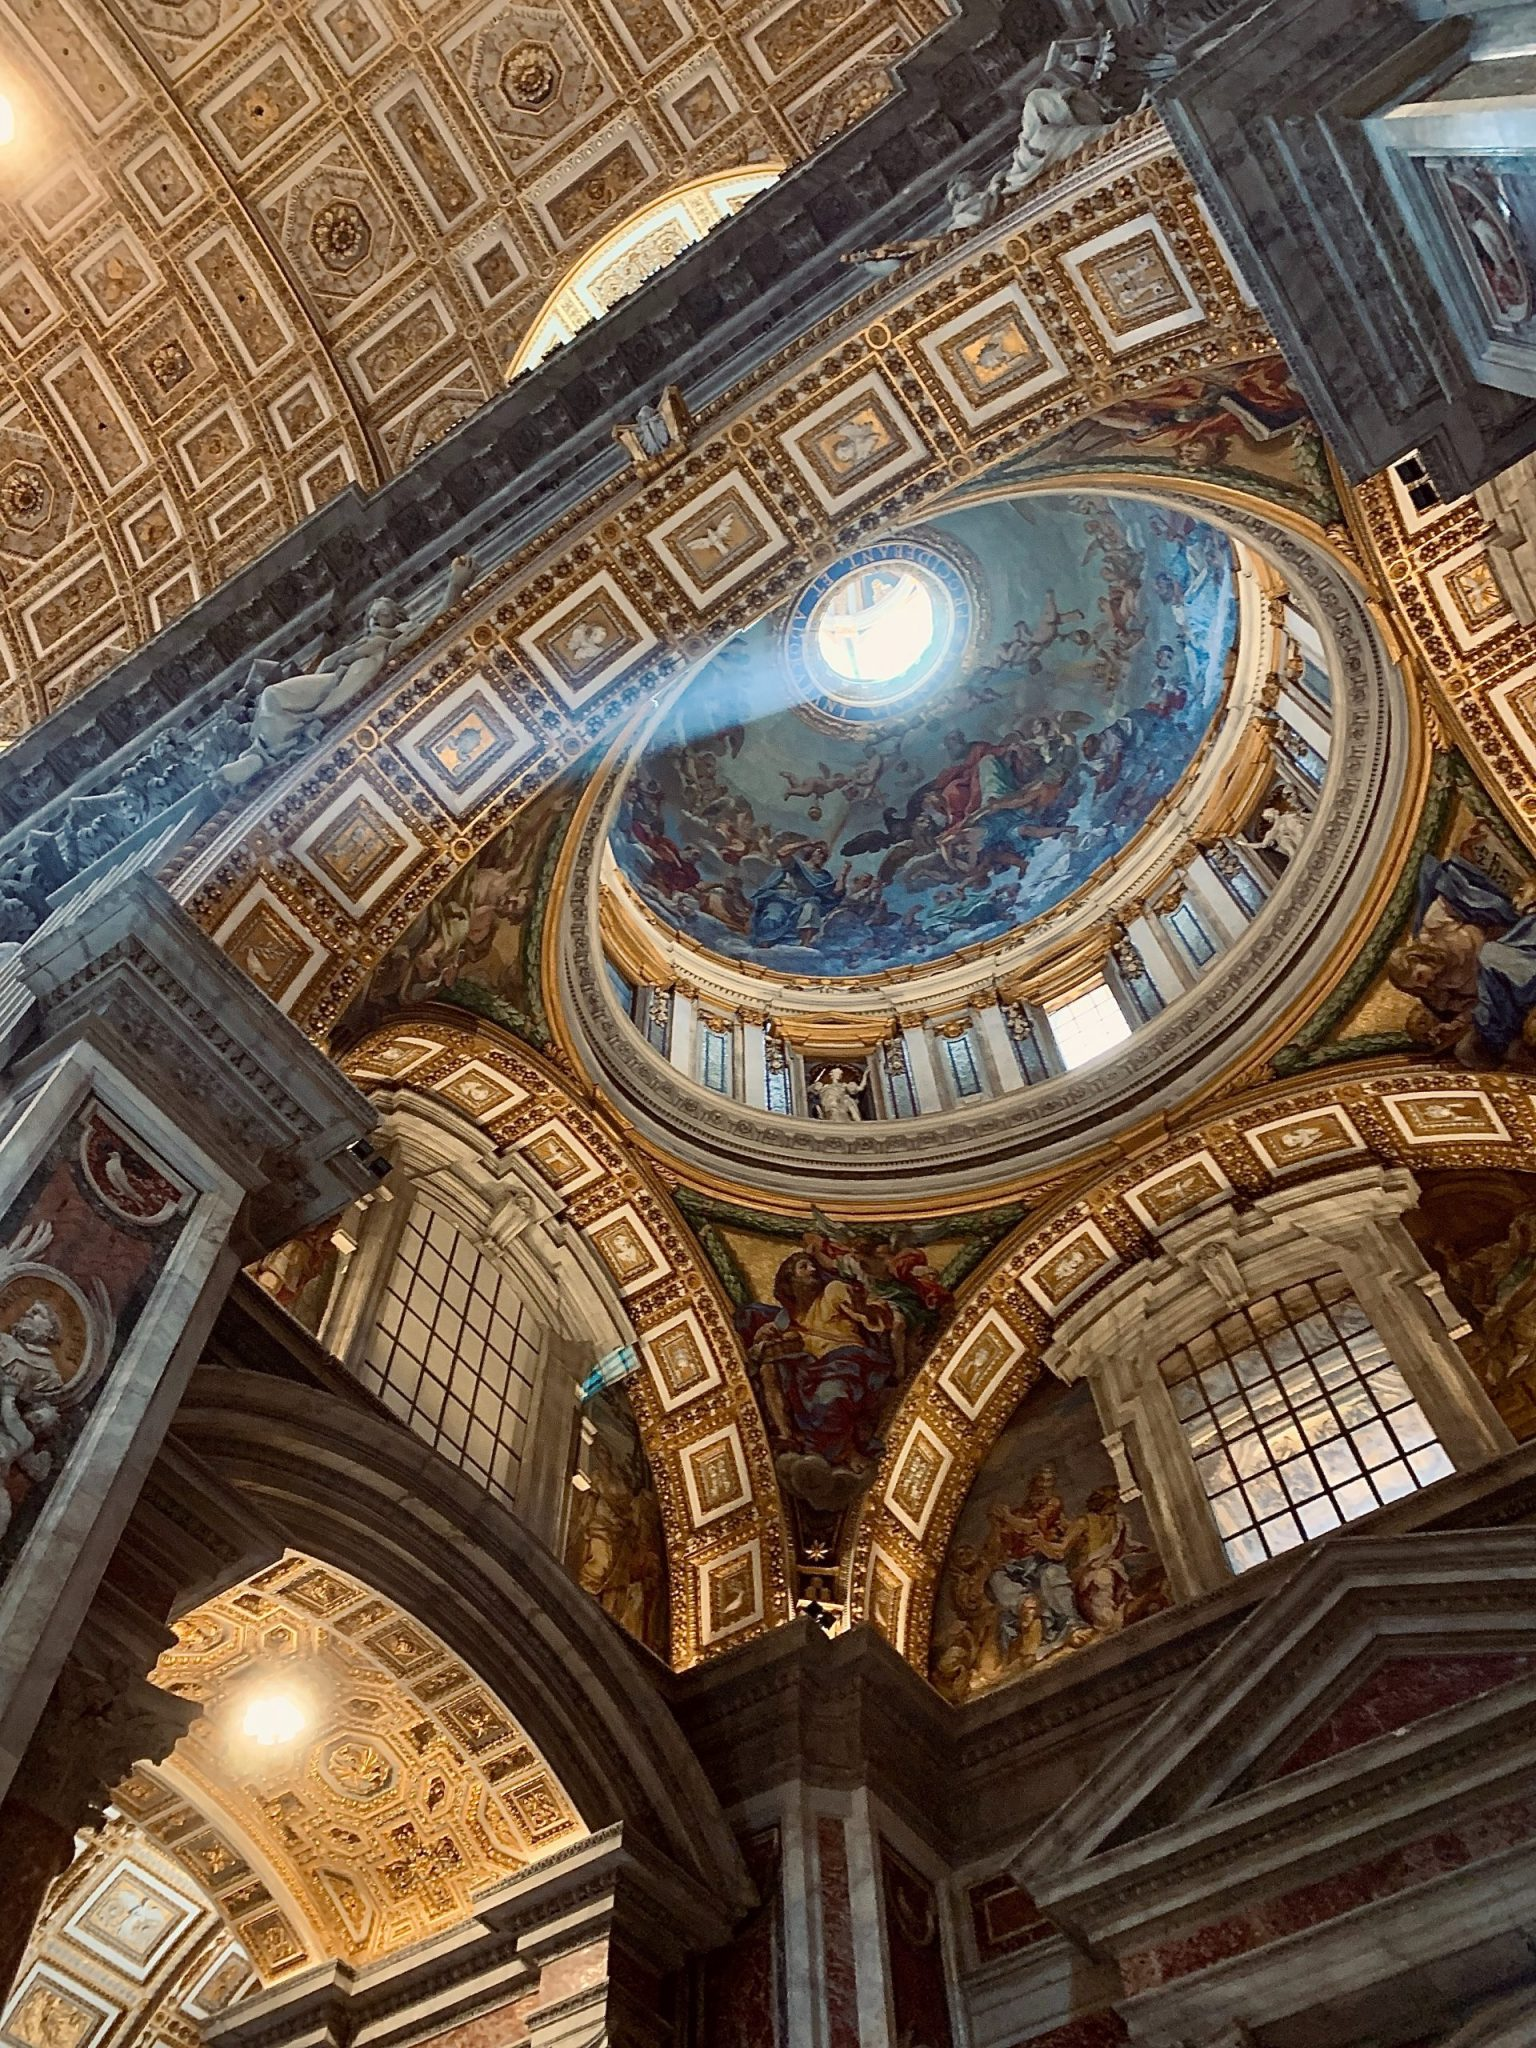 Another picture of the dome of St. Peter's Basilica in the Vatican City